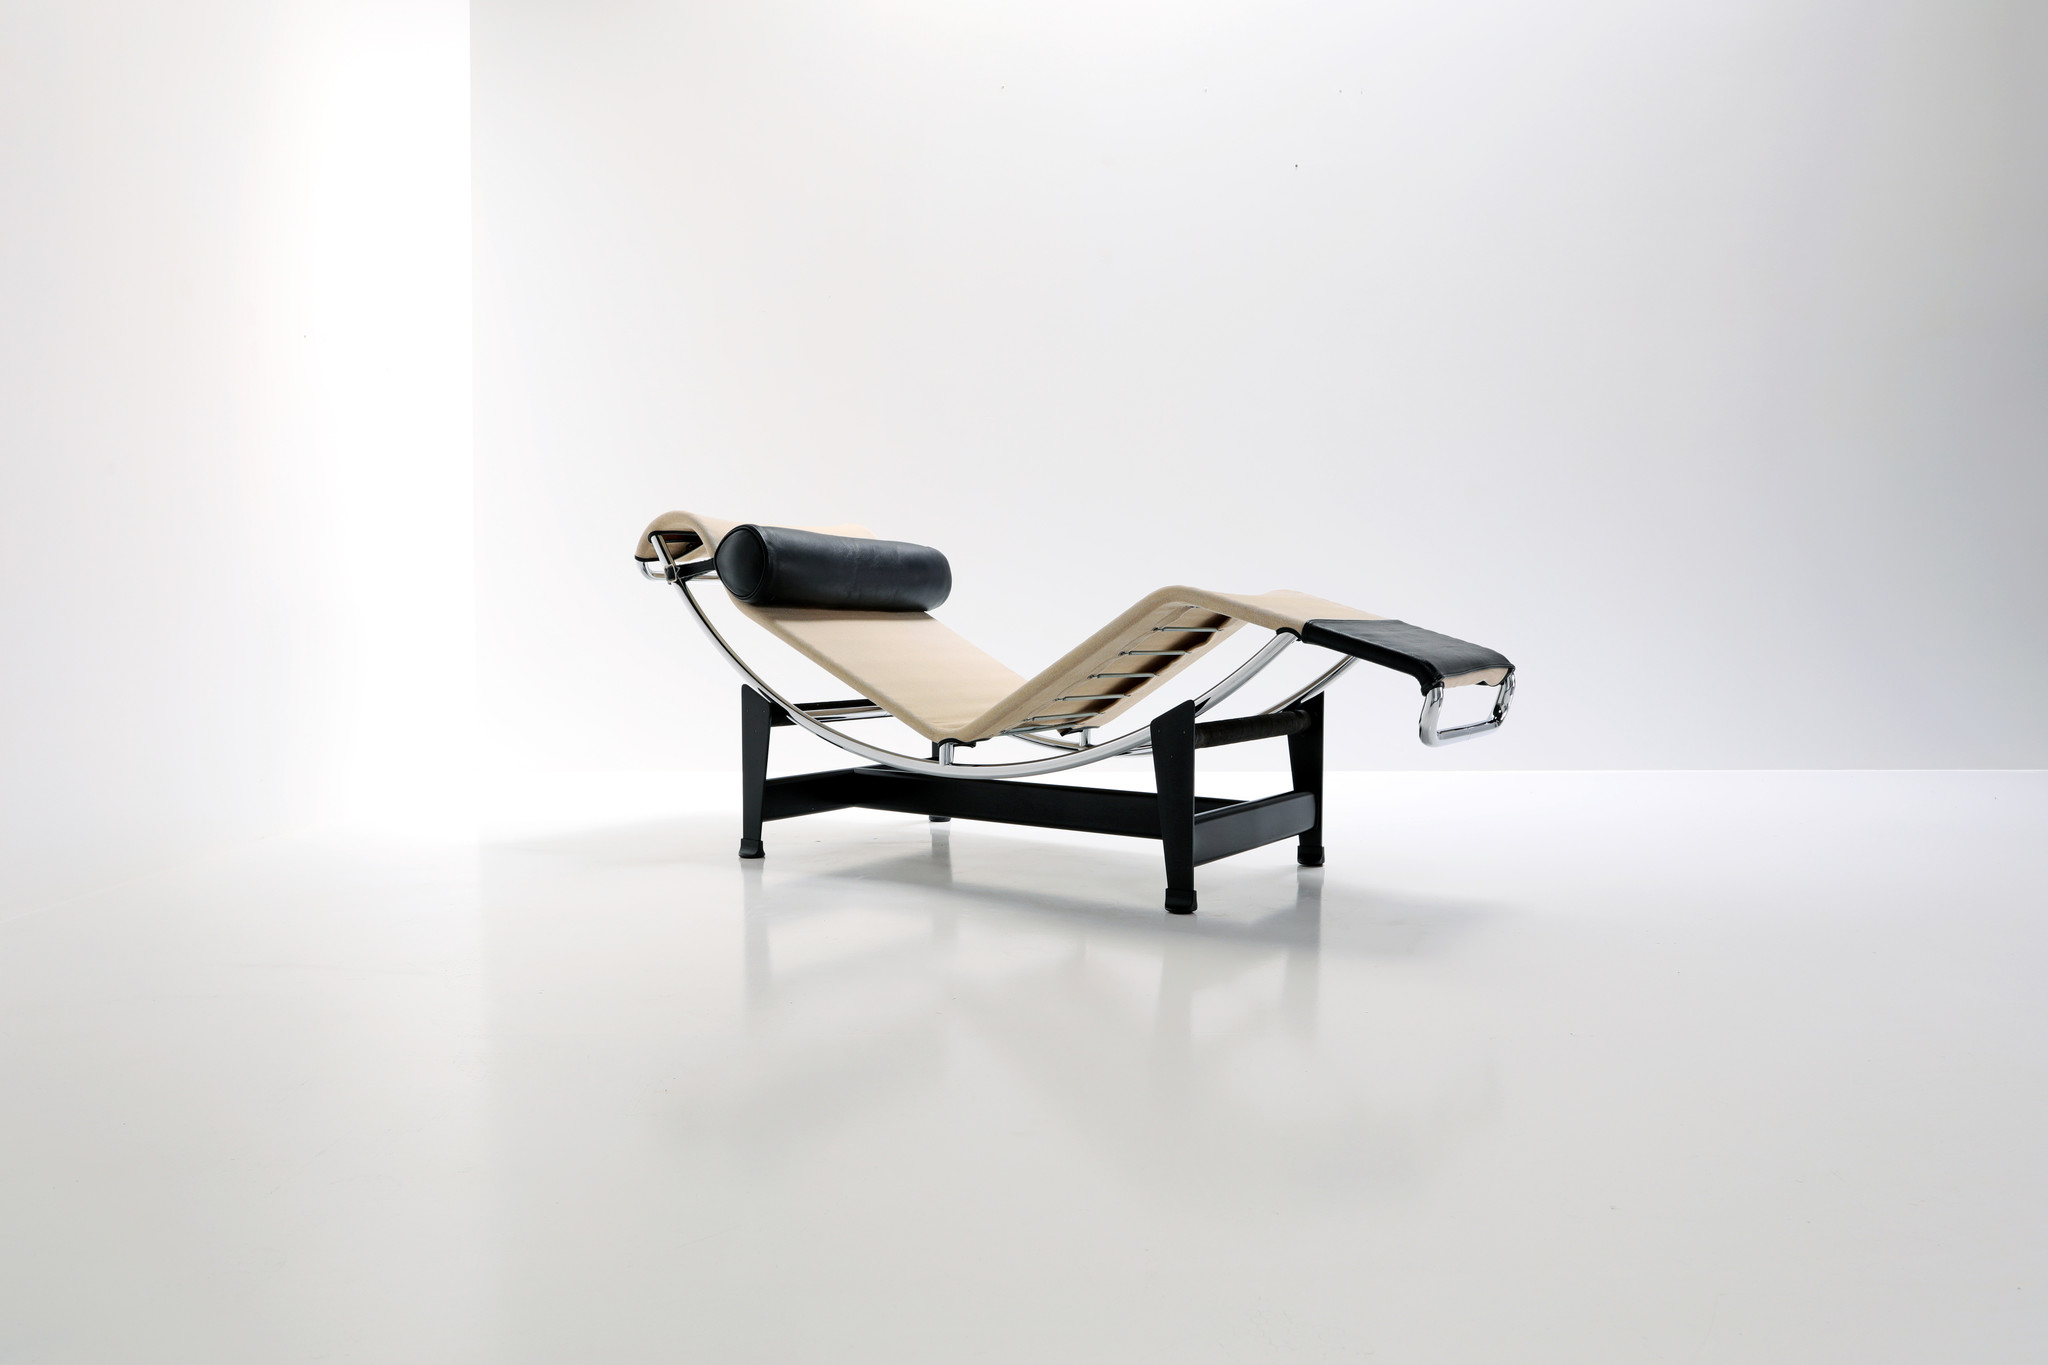 Canvas Chaise Longue designed by Le Corbusier lc4 for Cassina